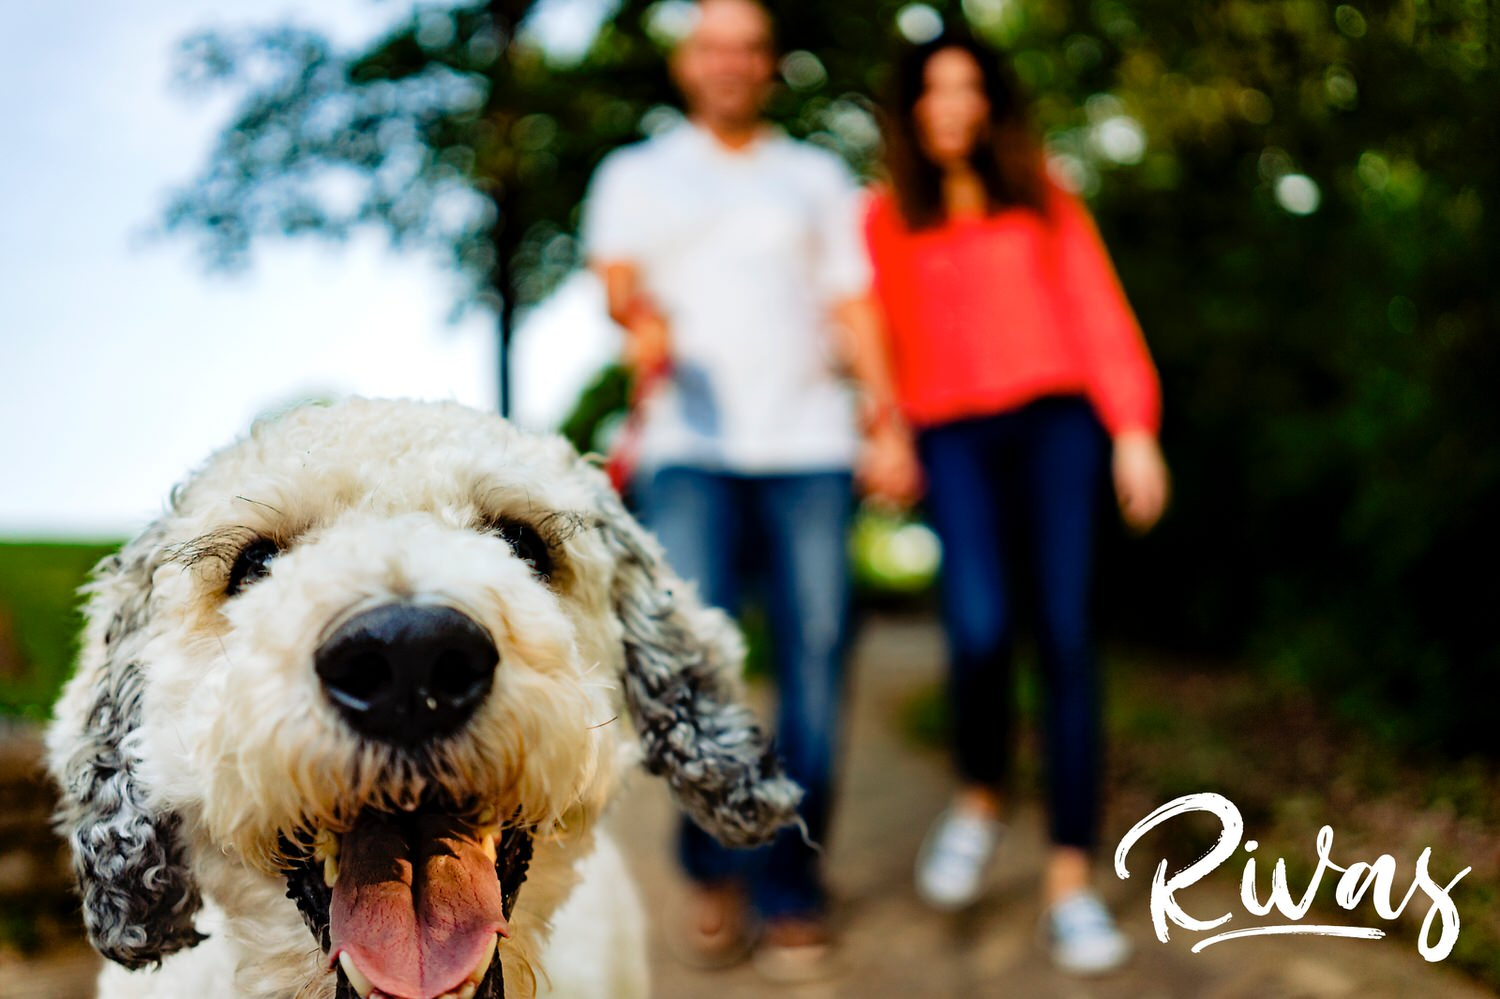 A fun, candid picture of a white poodle in the foreground in focus with his owners at the end of his leash just out of focus. a